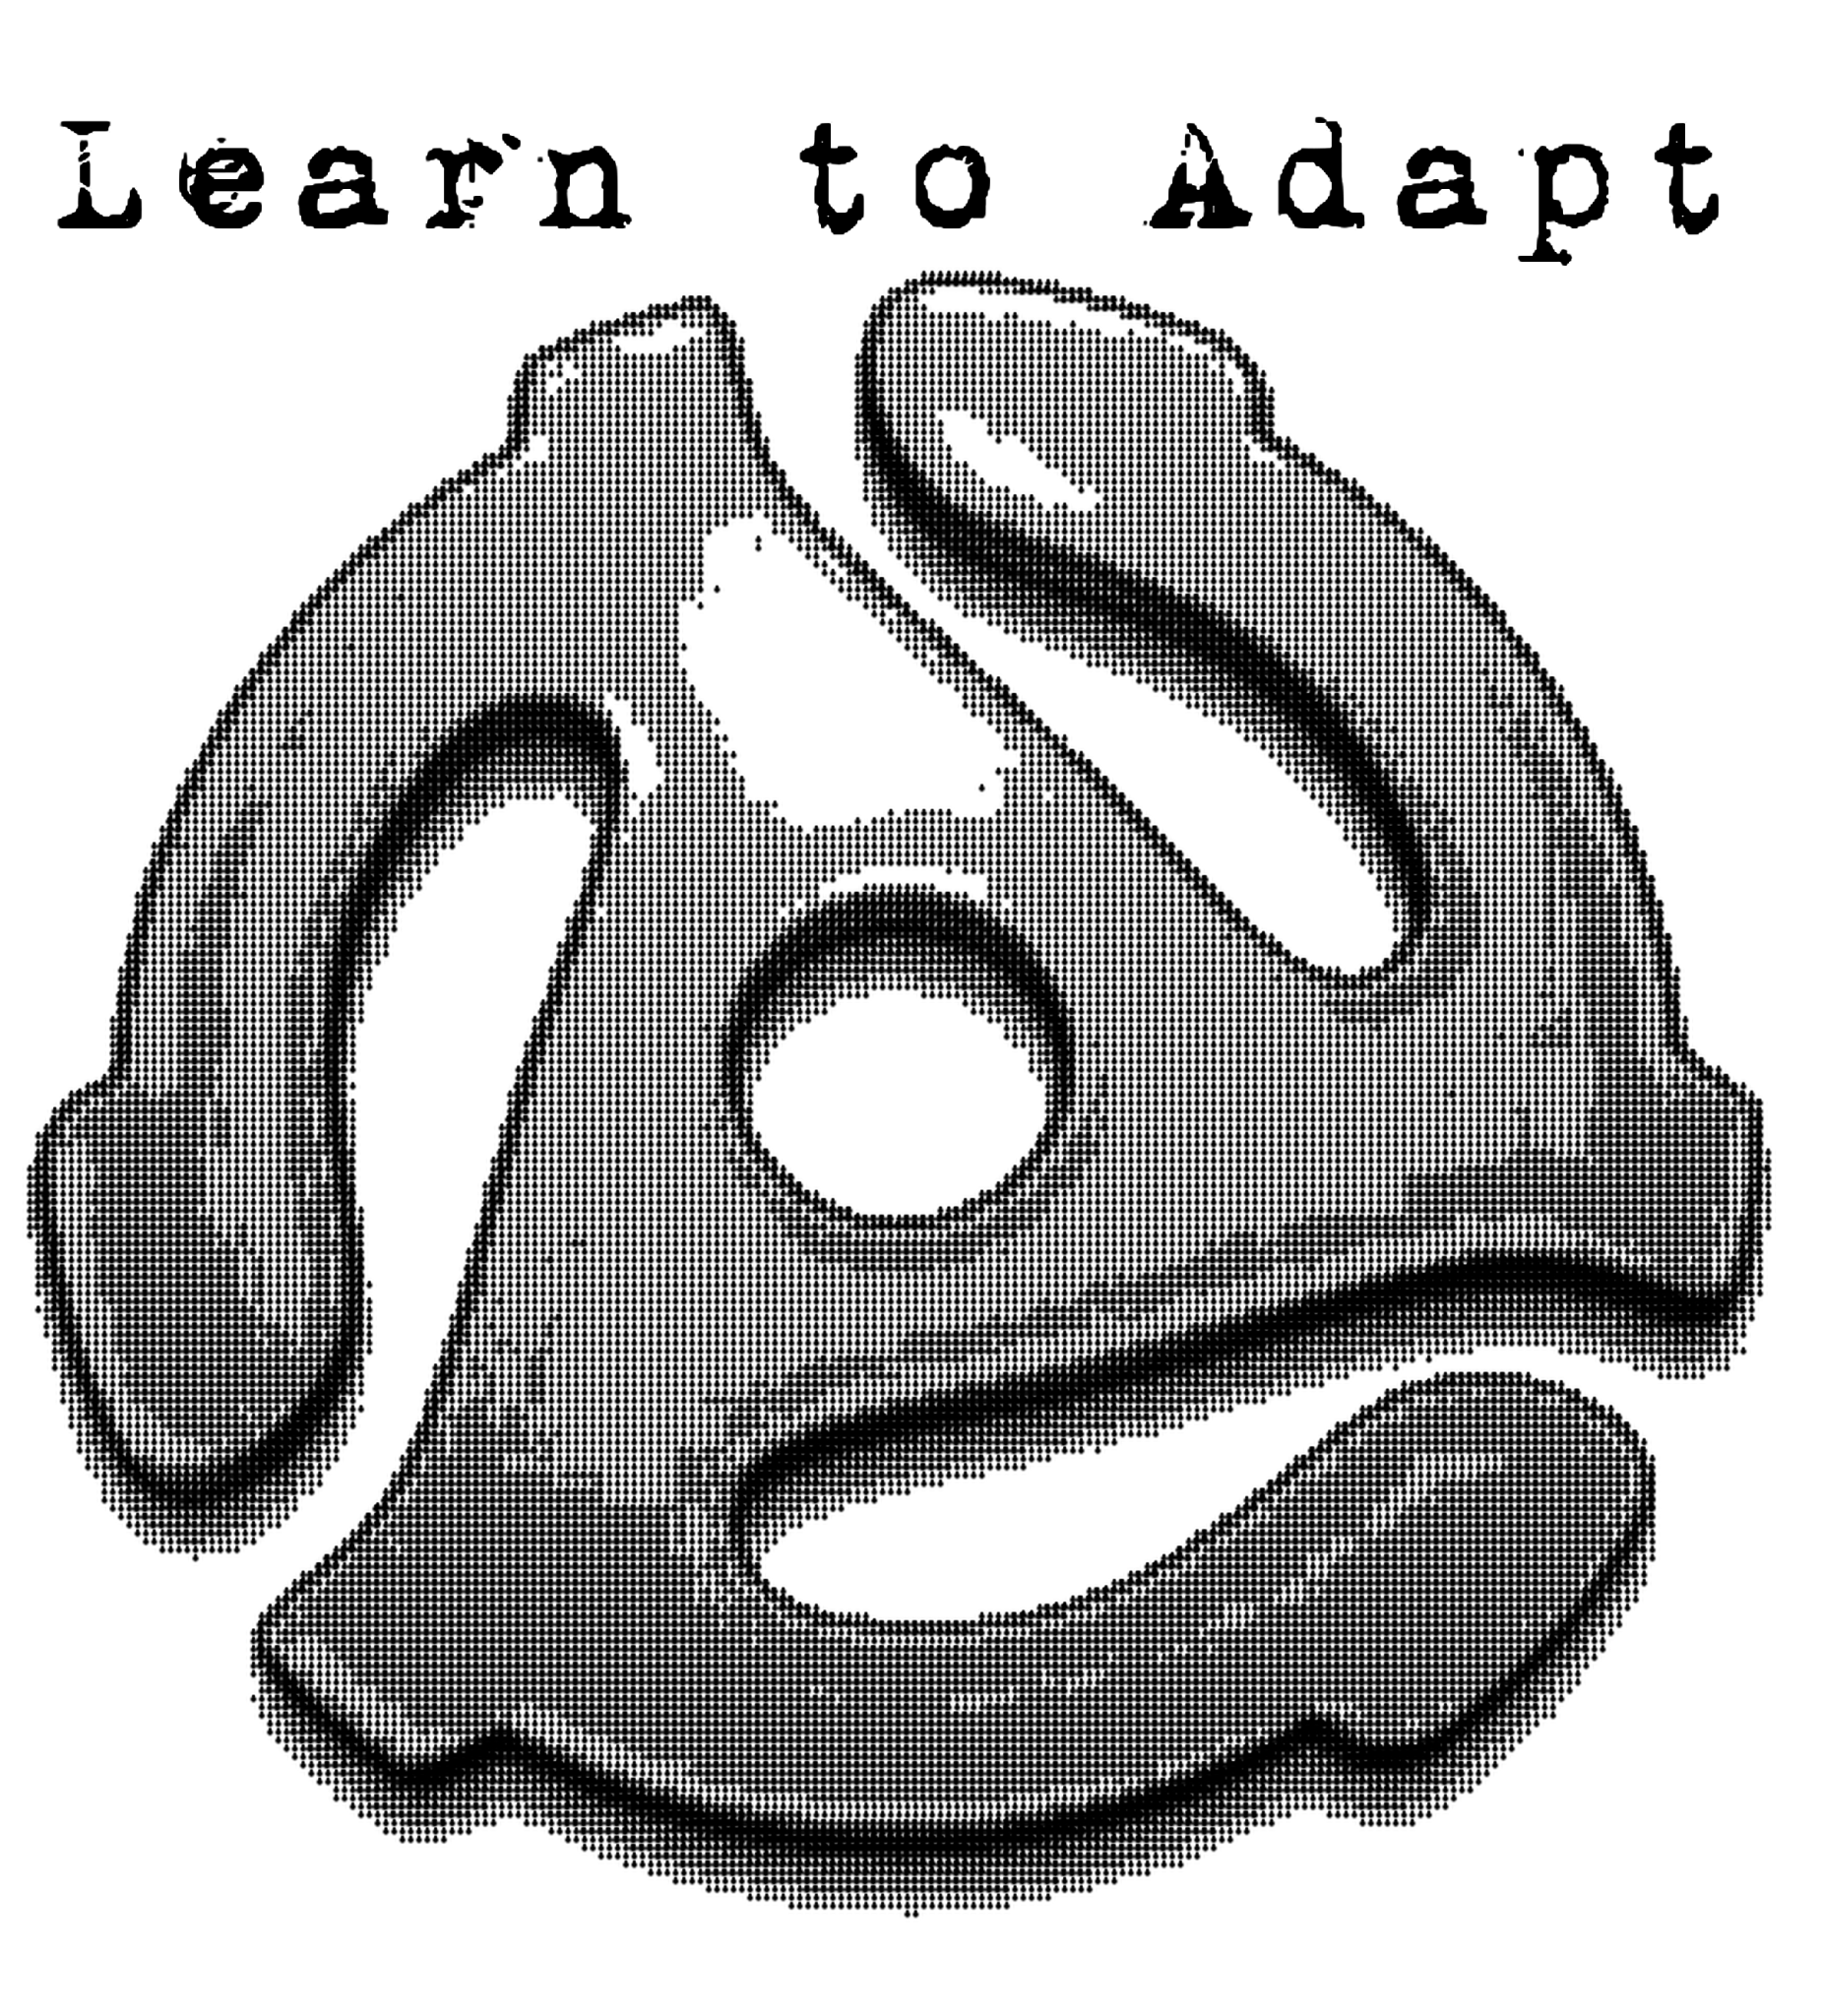 Learn to Adapt (with 45RPM adapter) tee shirt design